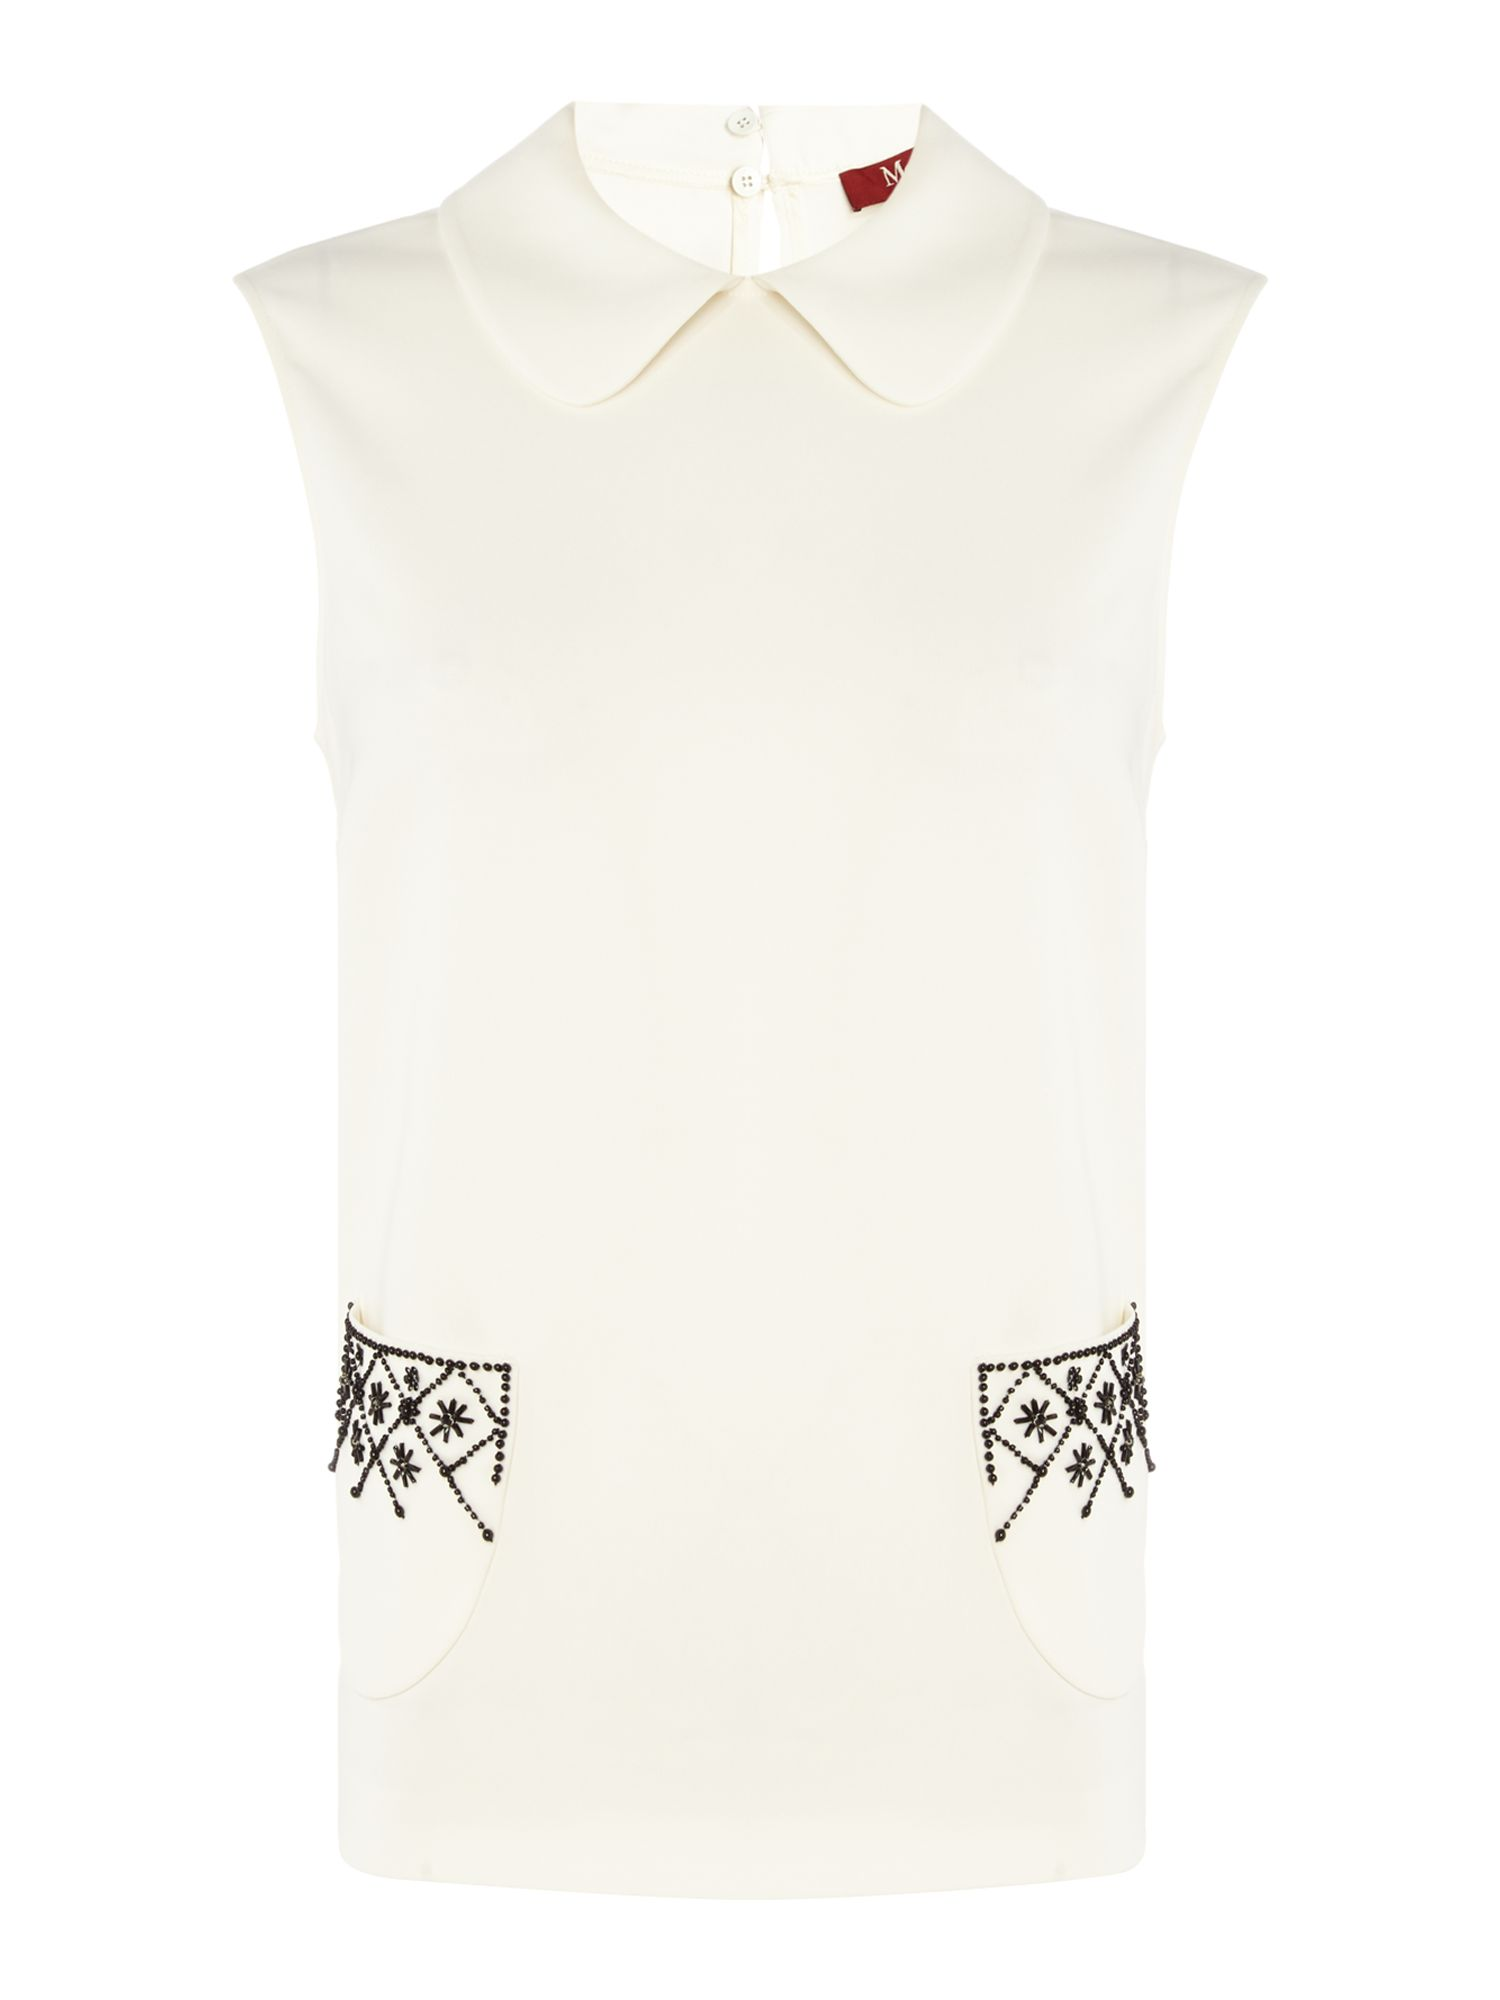 Max Mara Studio Pattino embellished pocket shirt, White